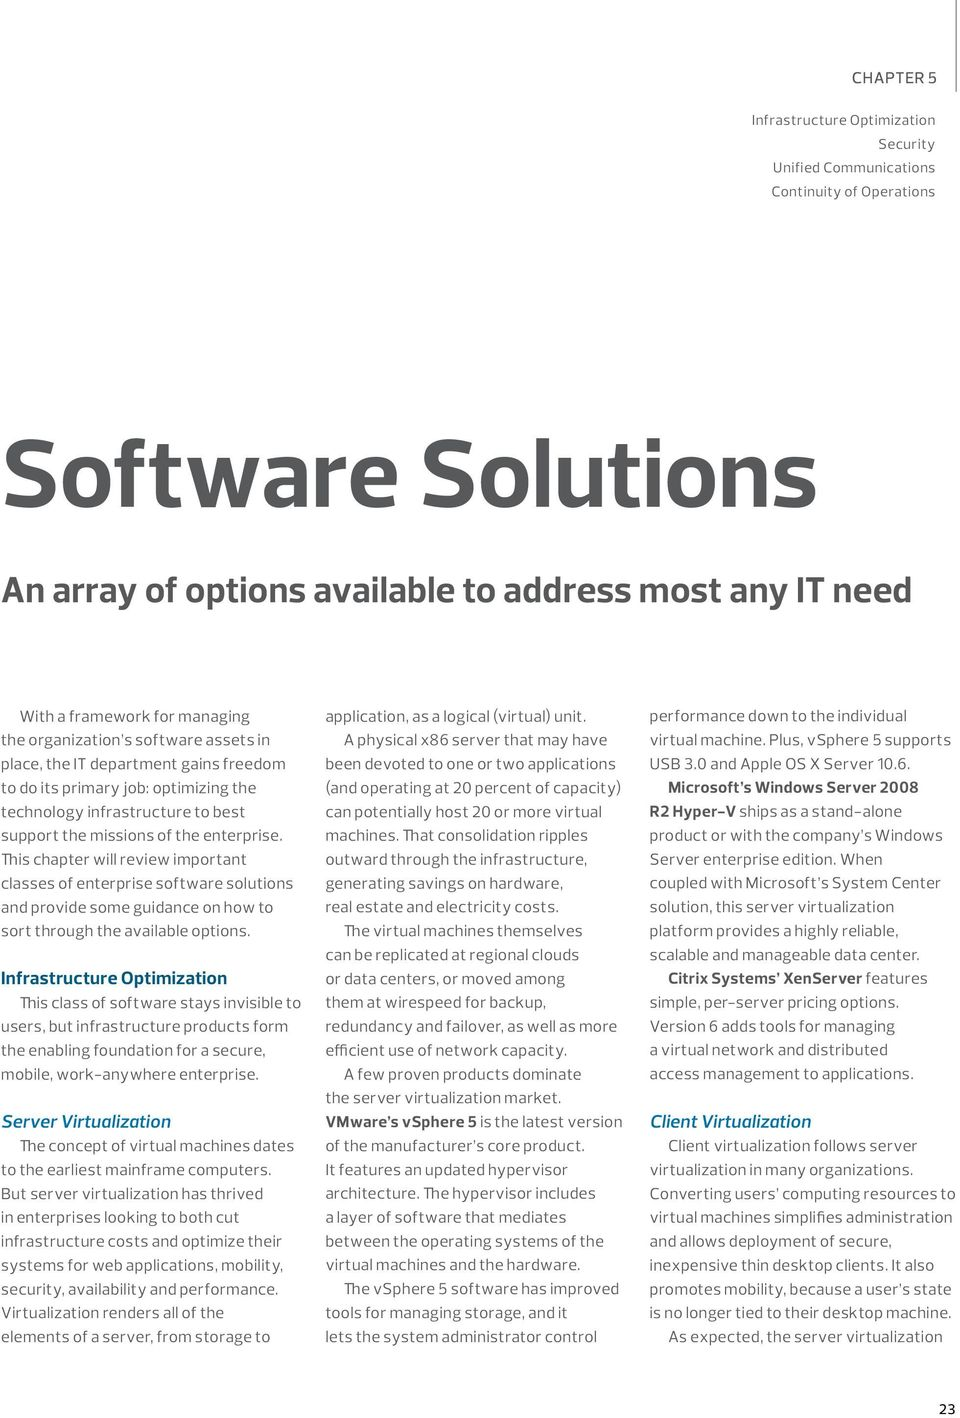 This chapter will review important classes of enterprise software solutions and provide some guidance on how to sort through the available options.